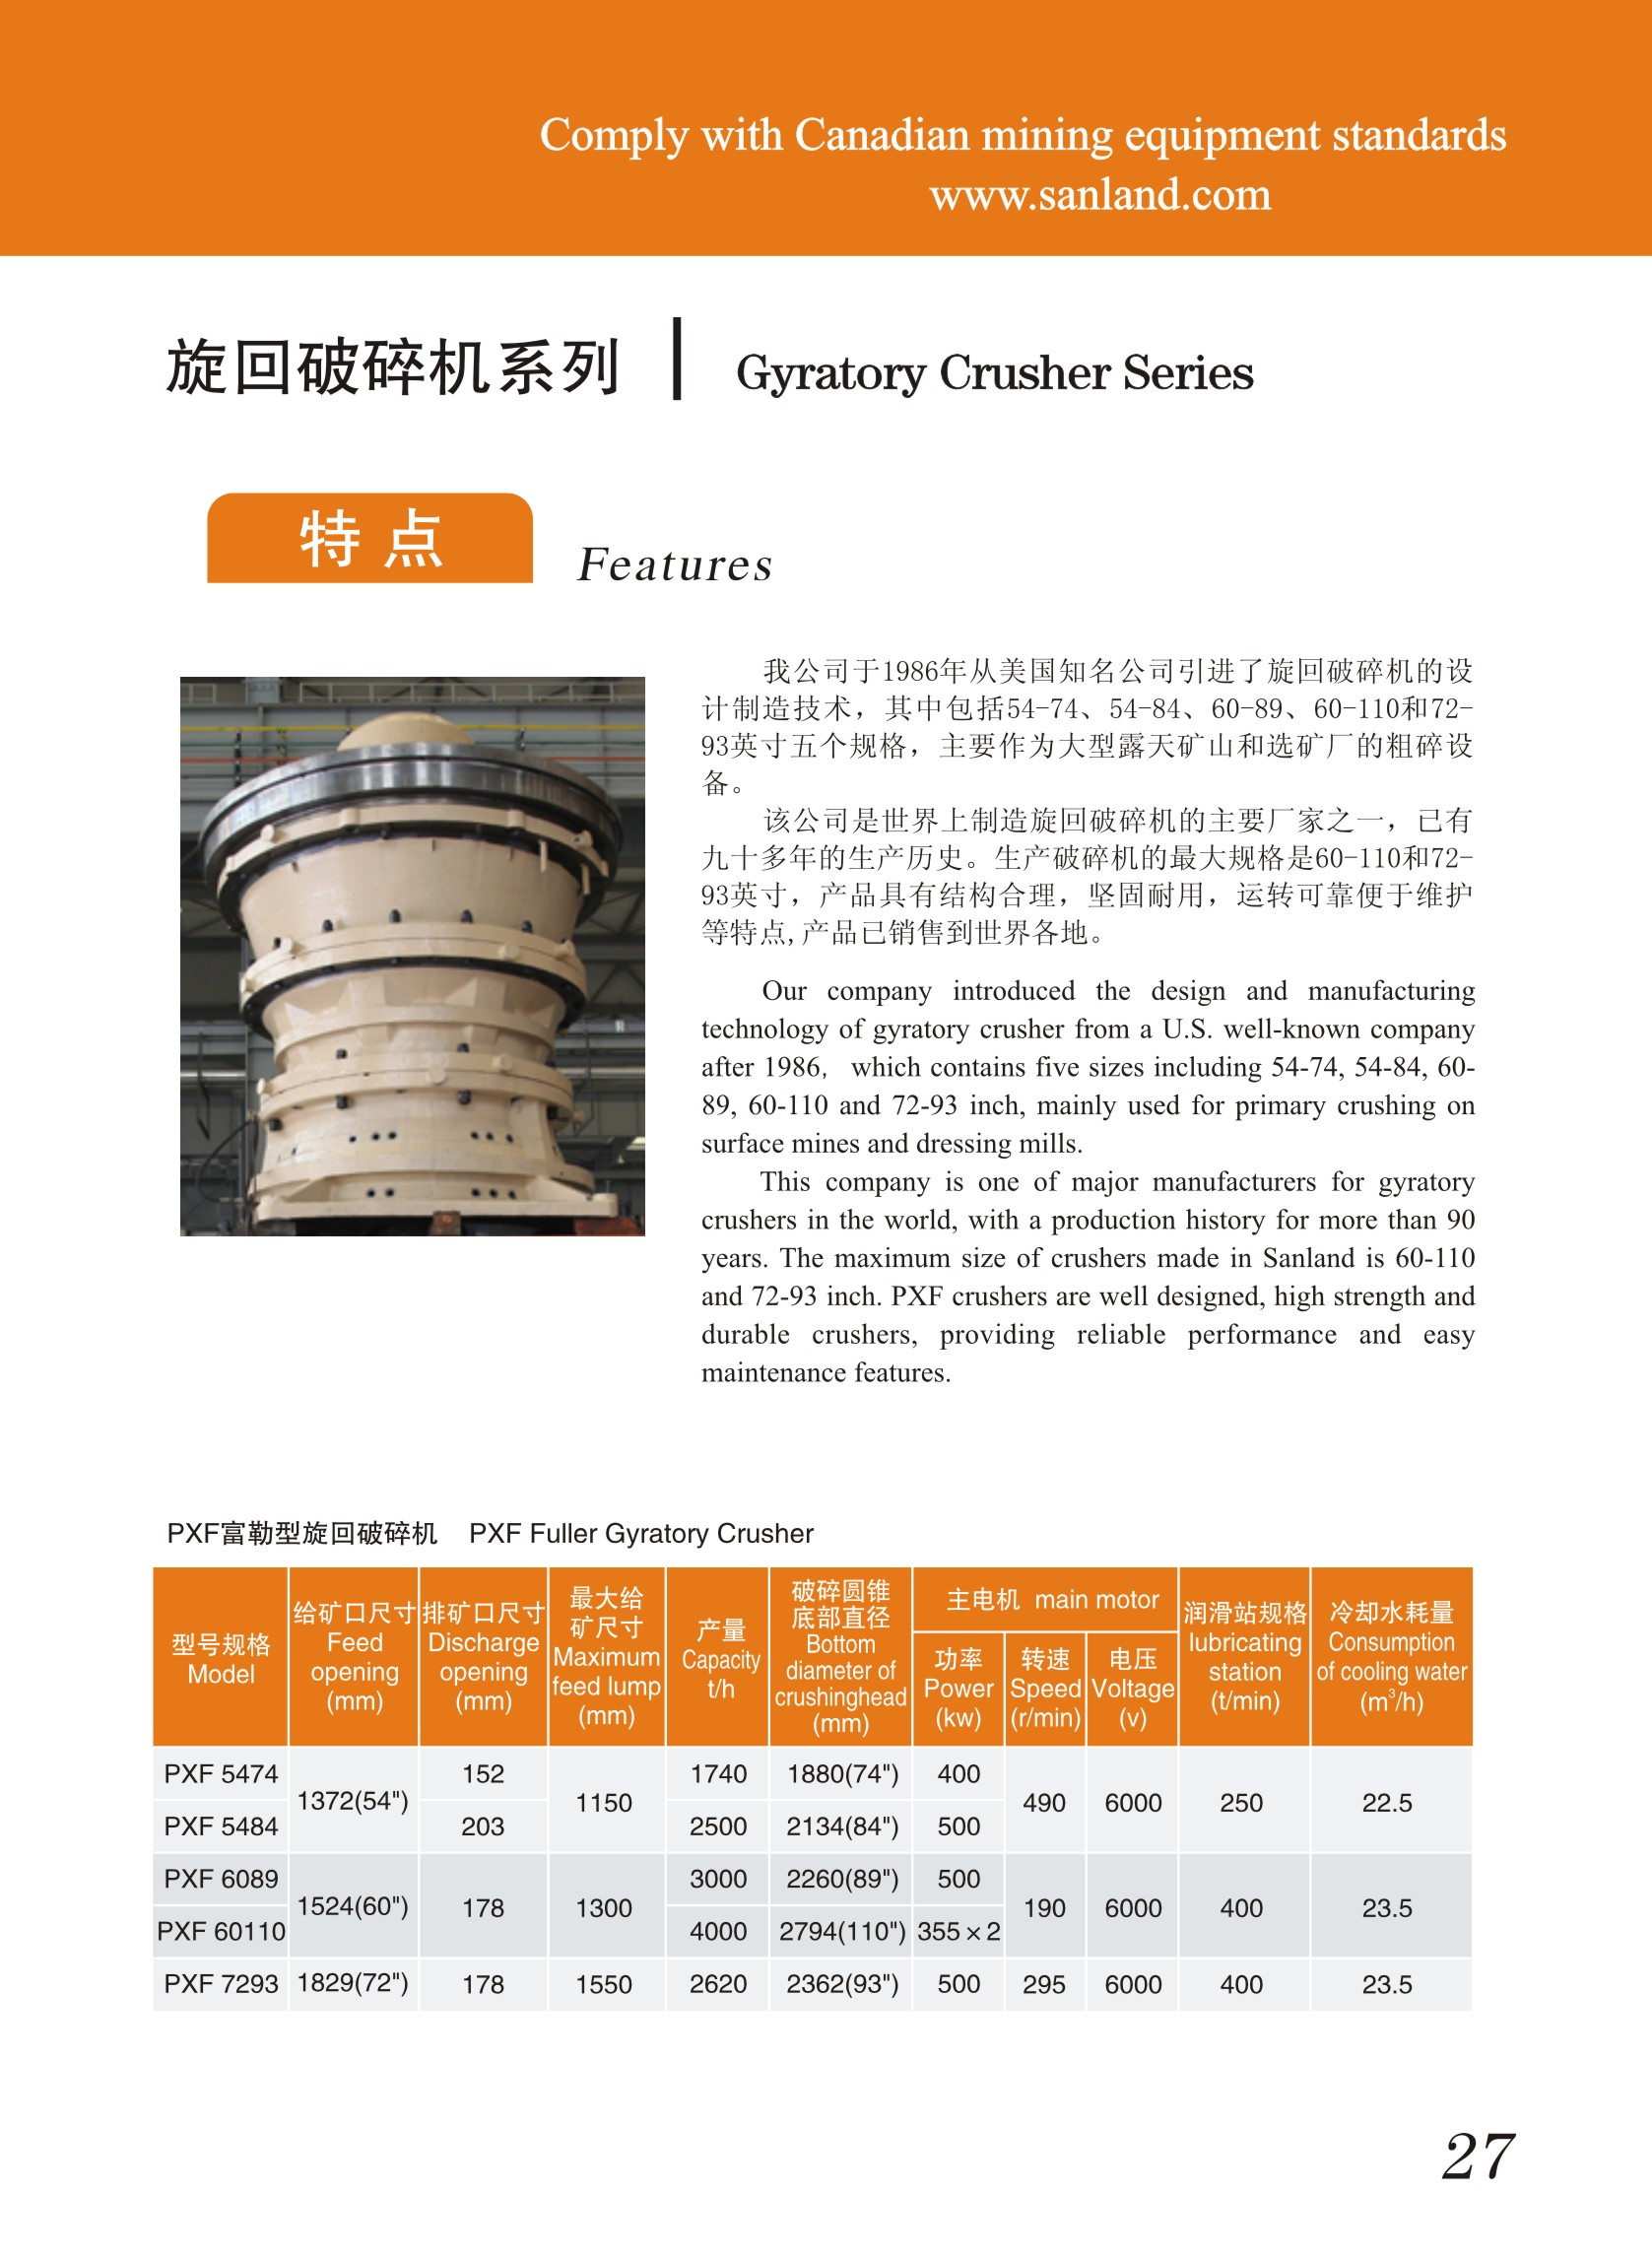 Gyratory Crusher For Mining